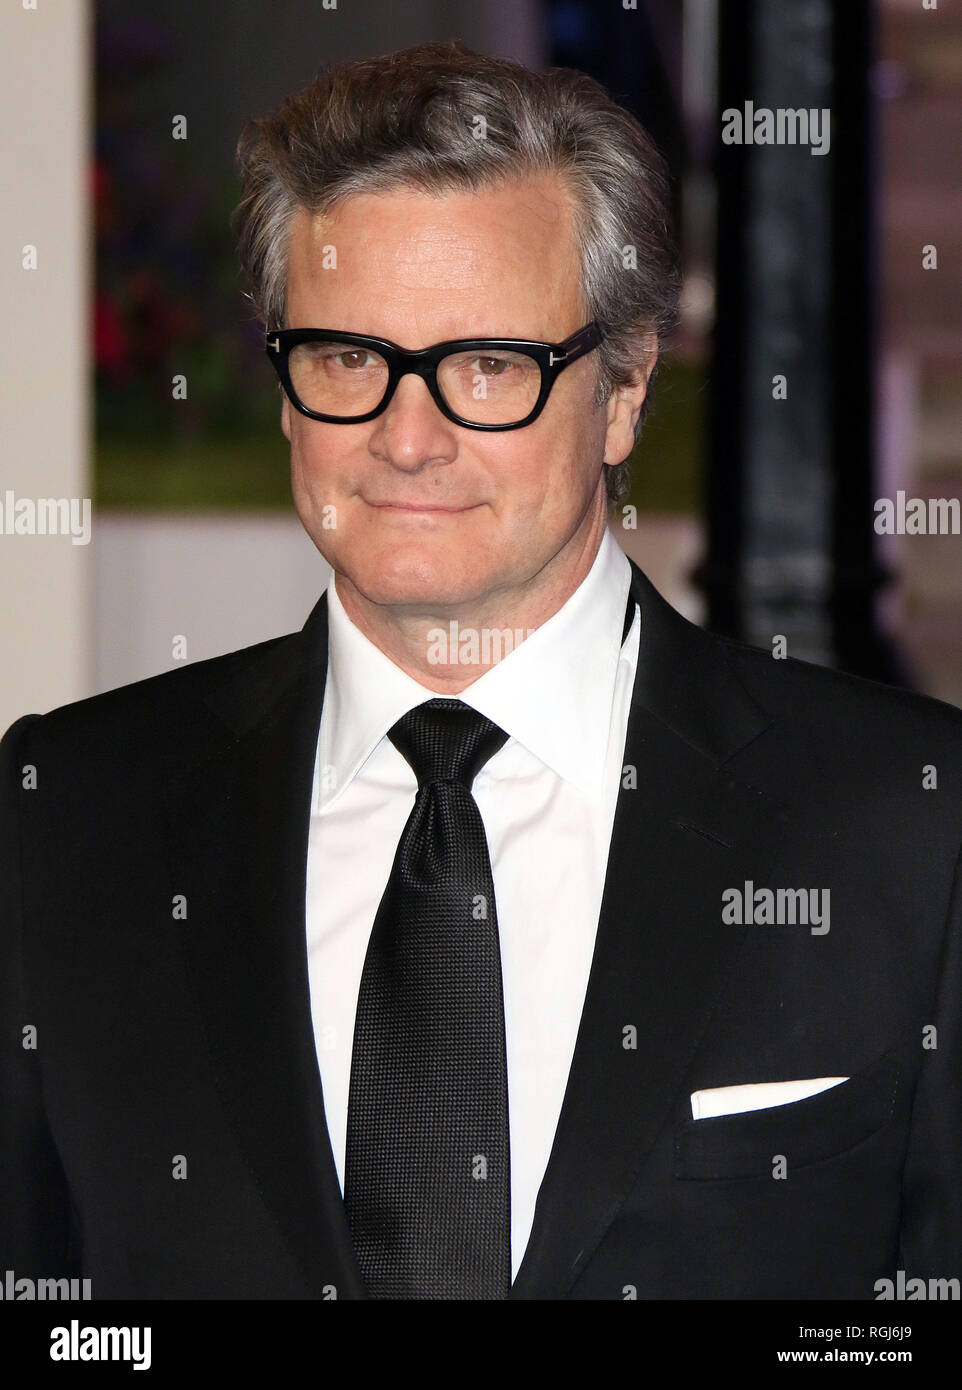 Dec 12, 2018 - Colin Firth an Mary Poppins zurück Europäische Premiere, der Royal Albert Hall in London, Großbritannien Stockbild